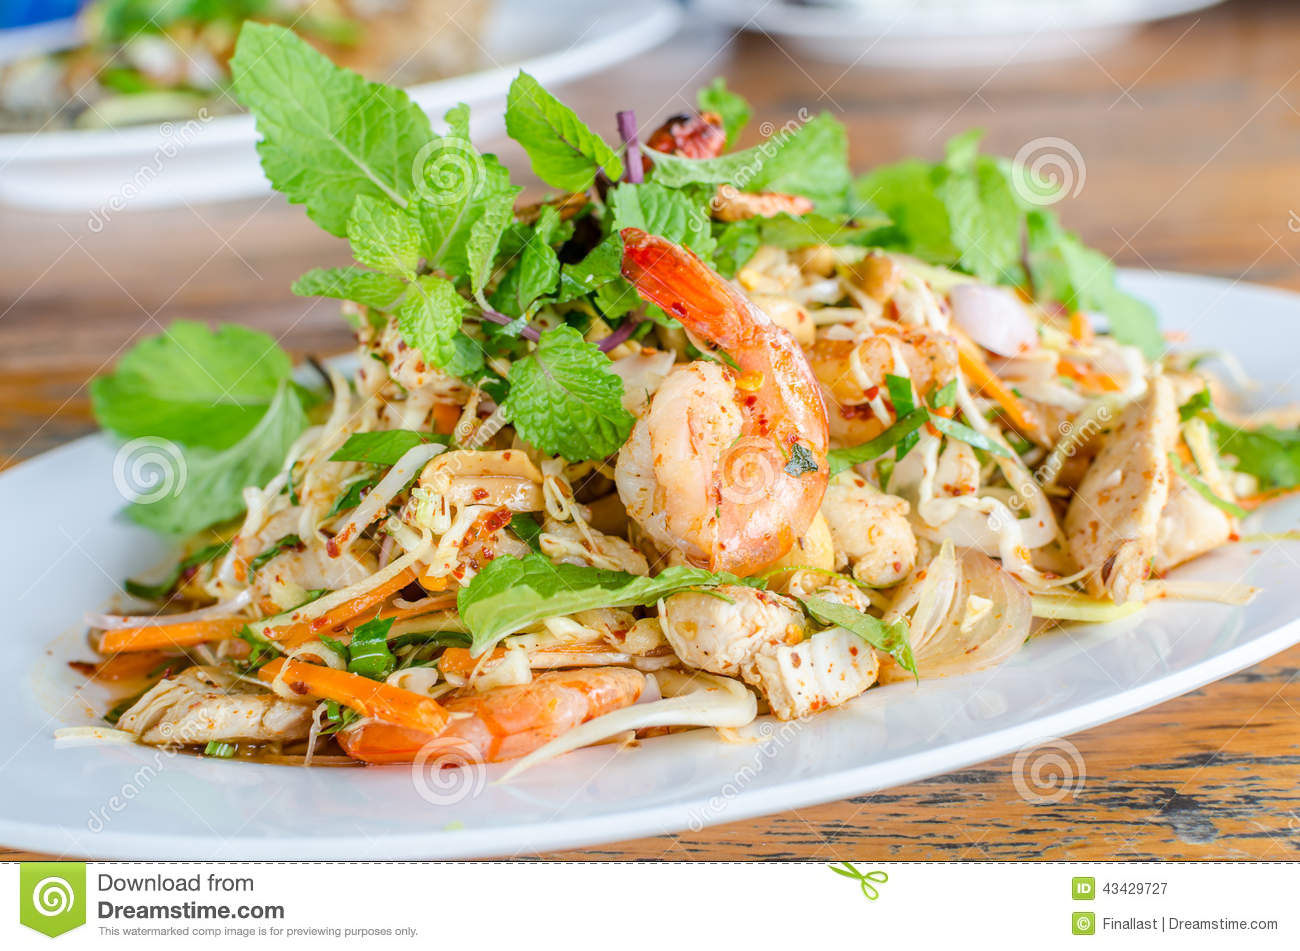 Thai Spicy Salad With Chicken, Shrimp, Fish And Vegetables Stock Photo ...